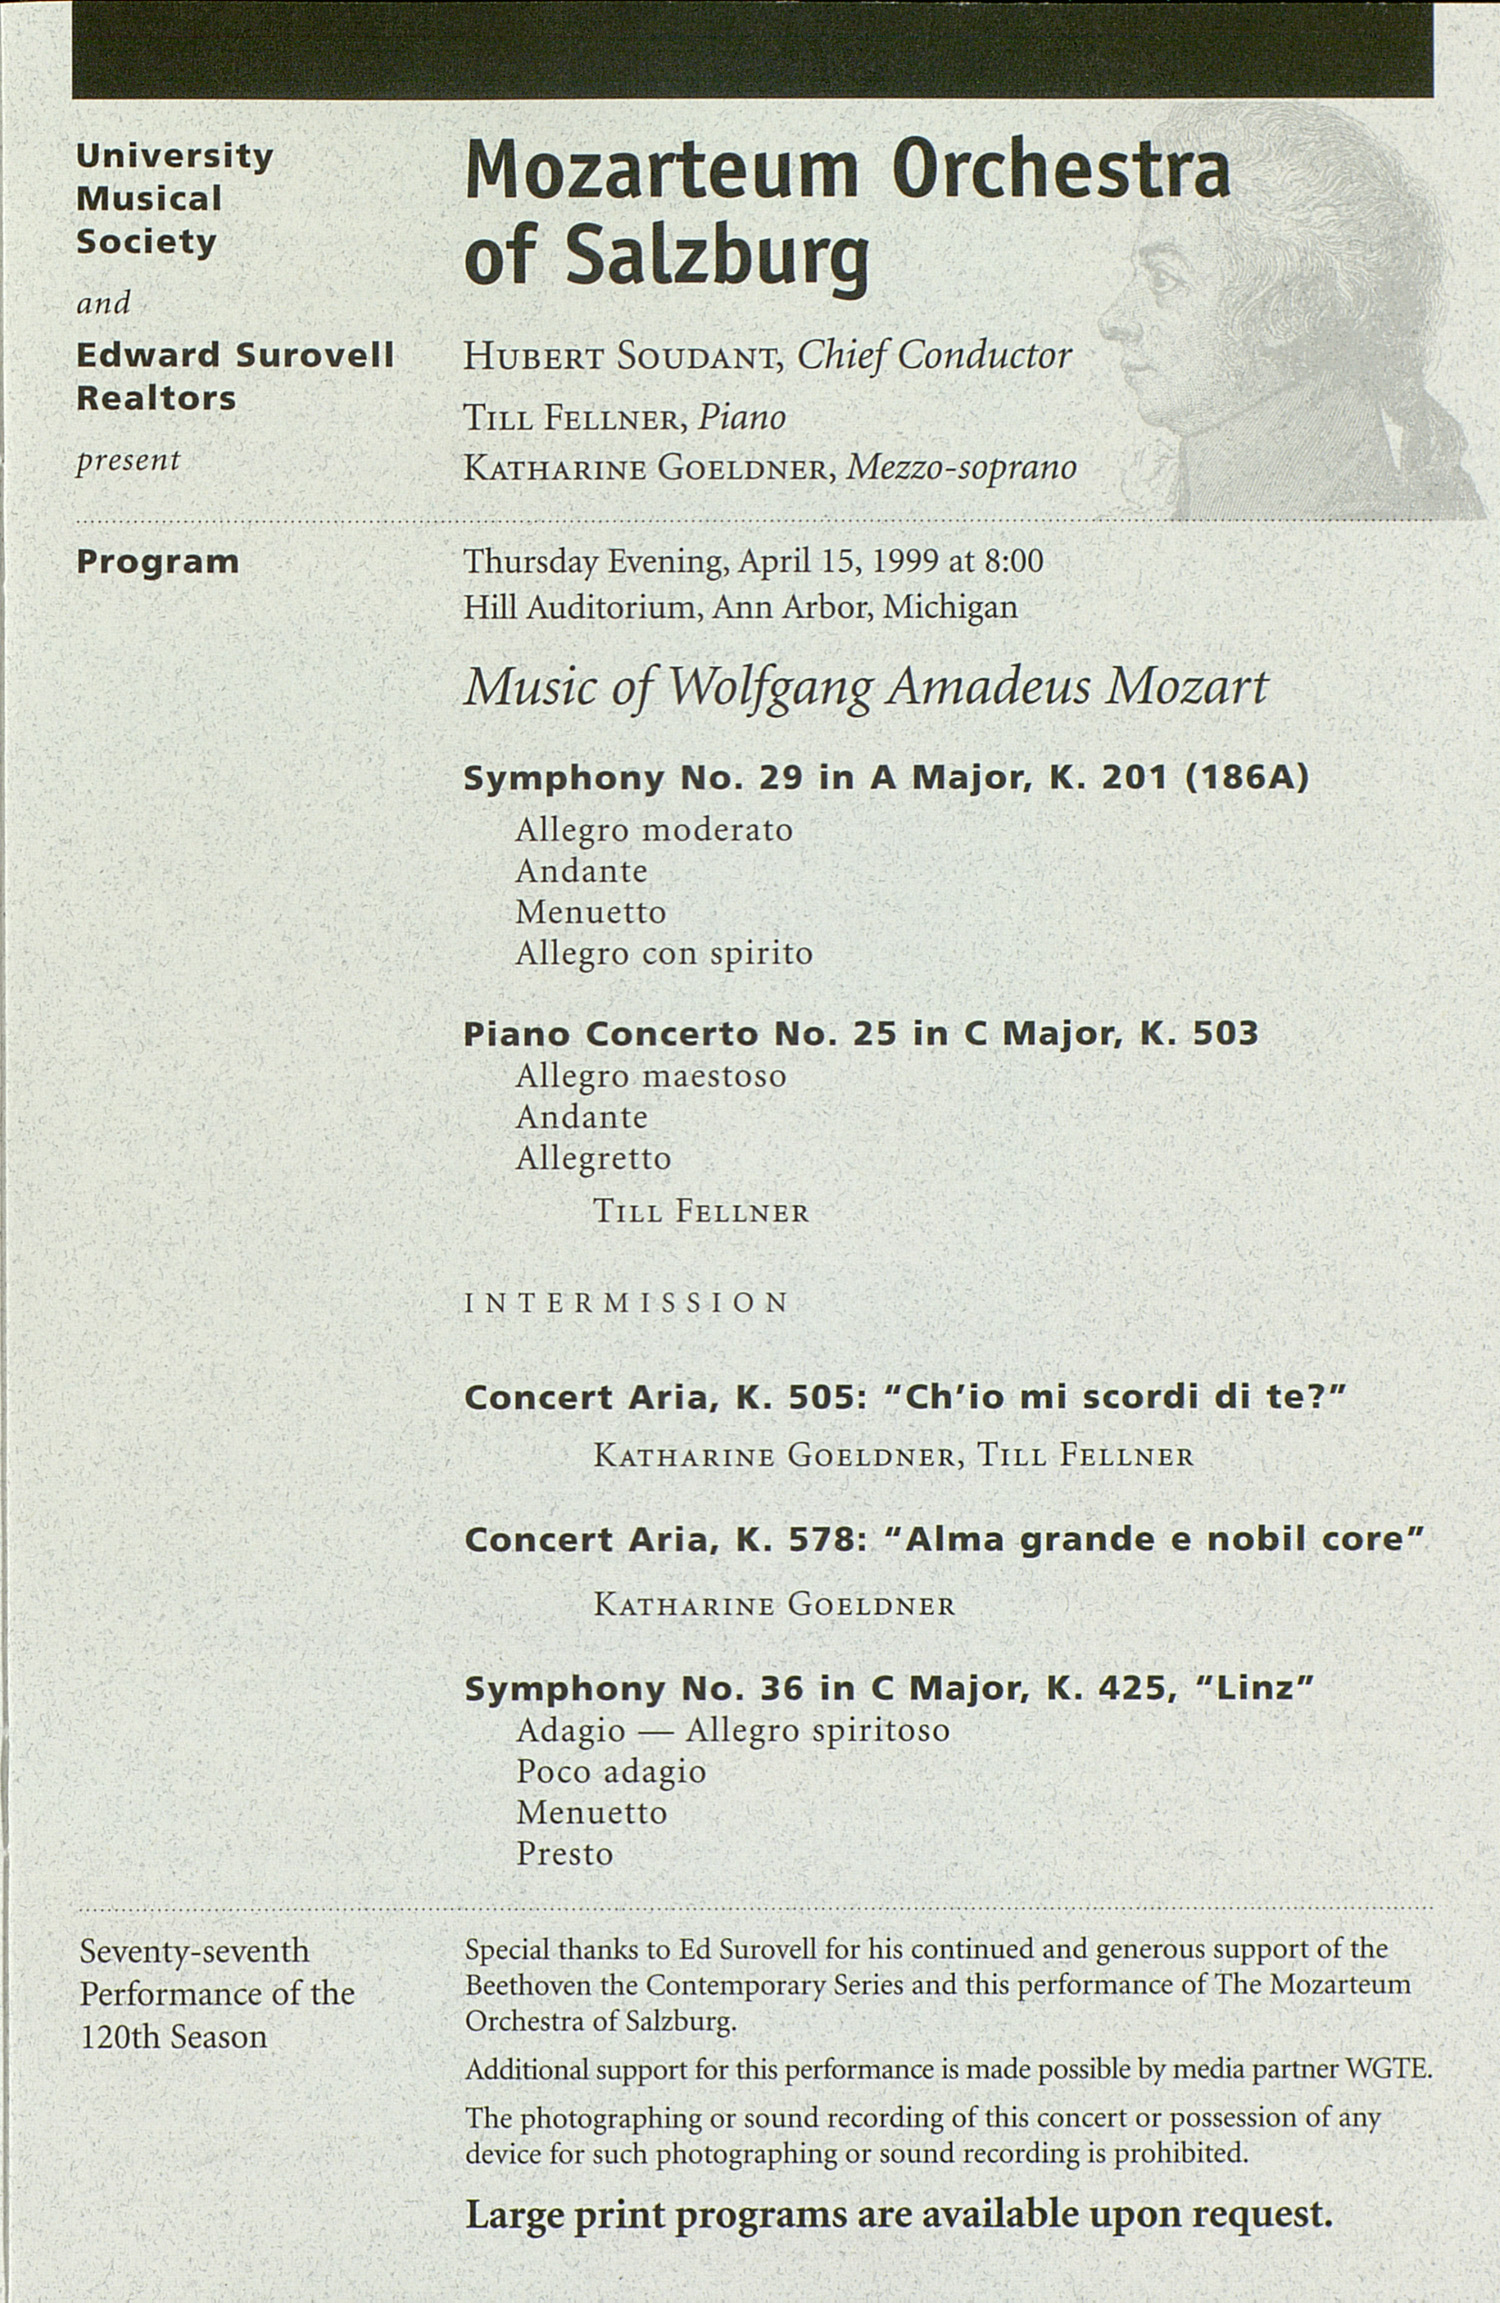 UMS Concert Program, Saturday Apr. 10 To 18: University Musical Society: 1998-1999 Winter - Saturday Apr. 10 To 18 --  image